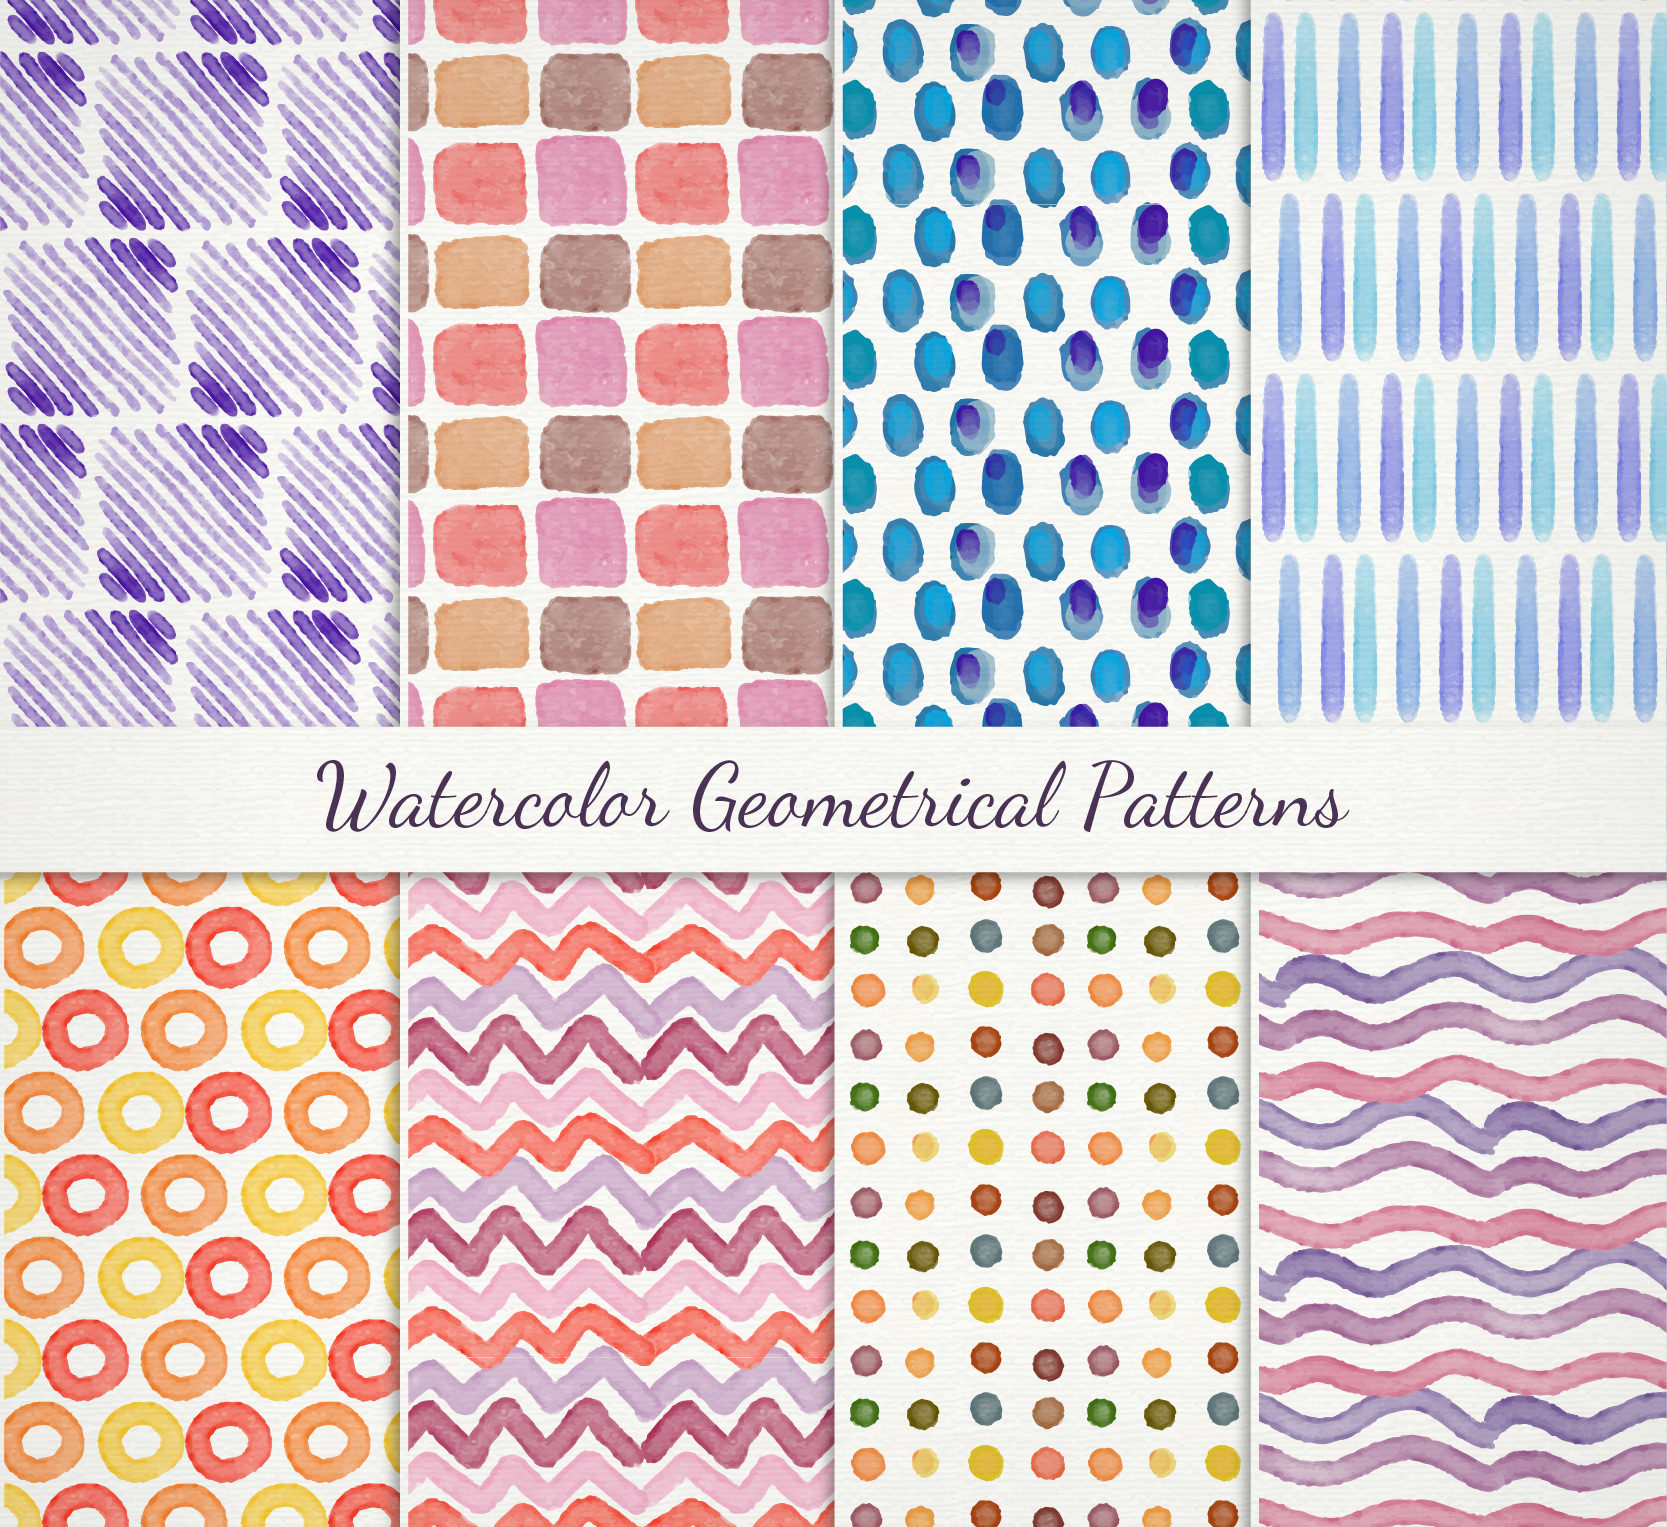 Free Vector Watercolor Geometrical Patterns